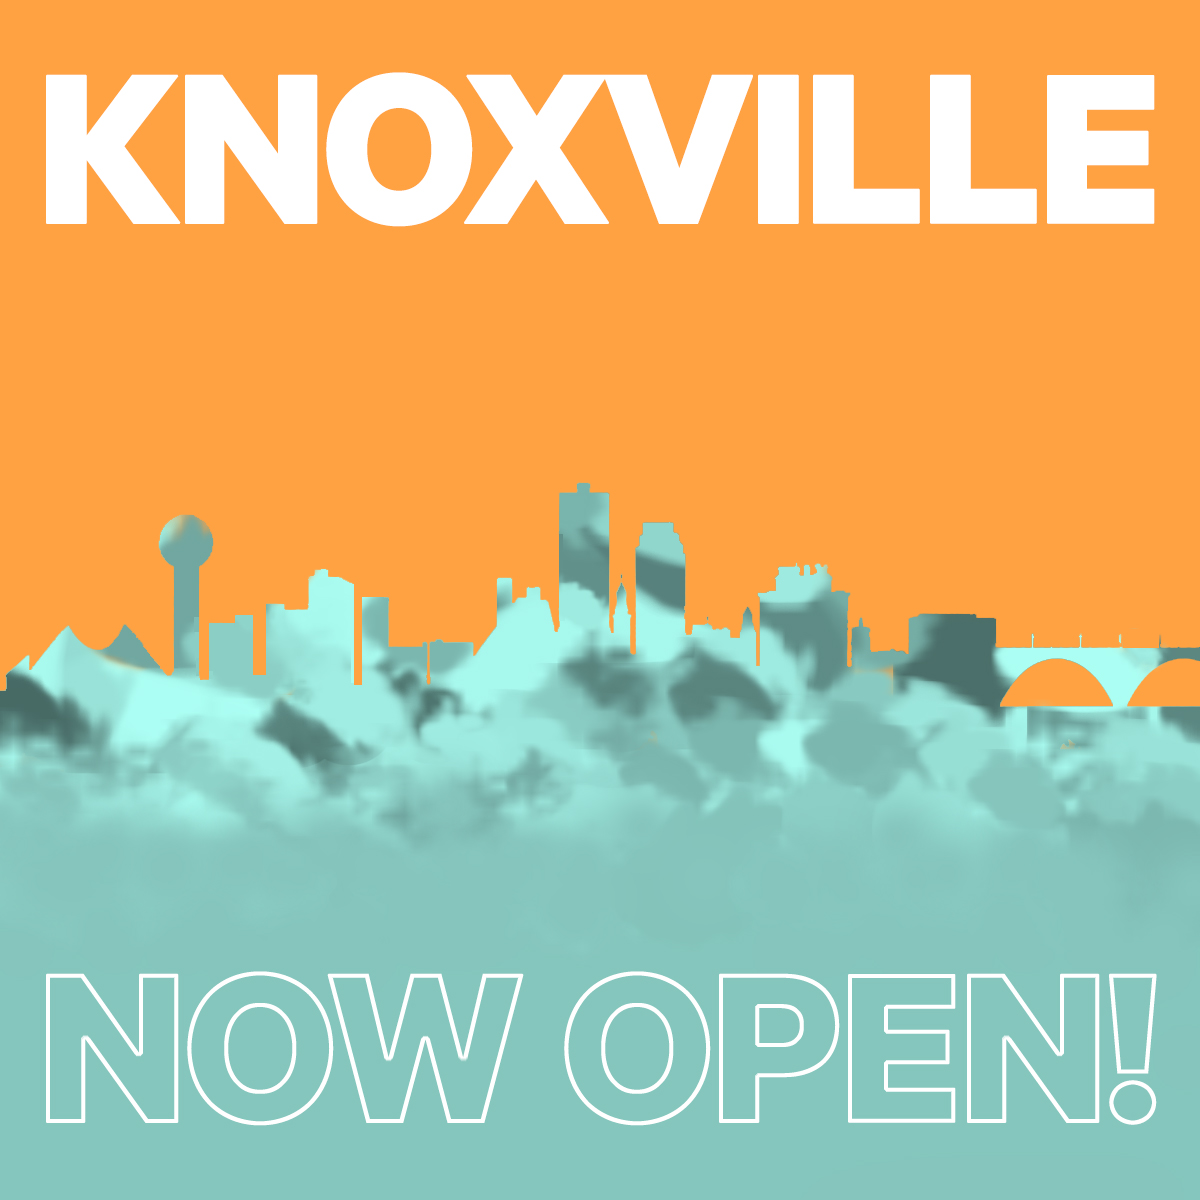 Now Open! Nadeau Knoxville